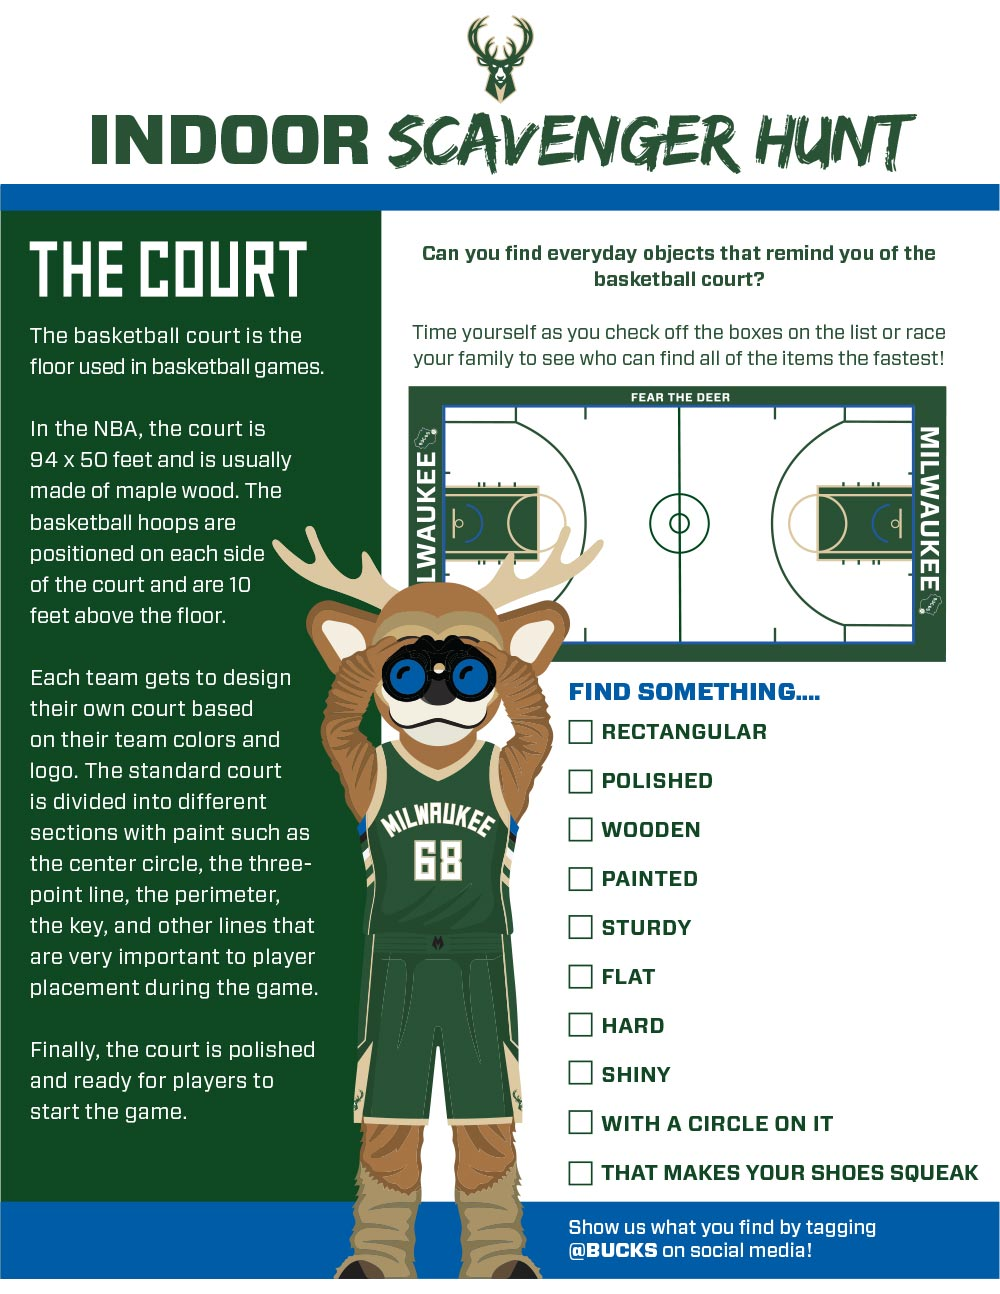 Bucks Kids Pages Indoor Scavenger Hunt: The Court